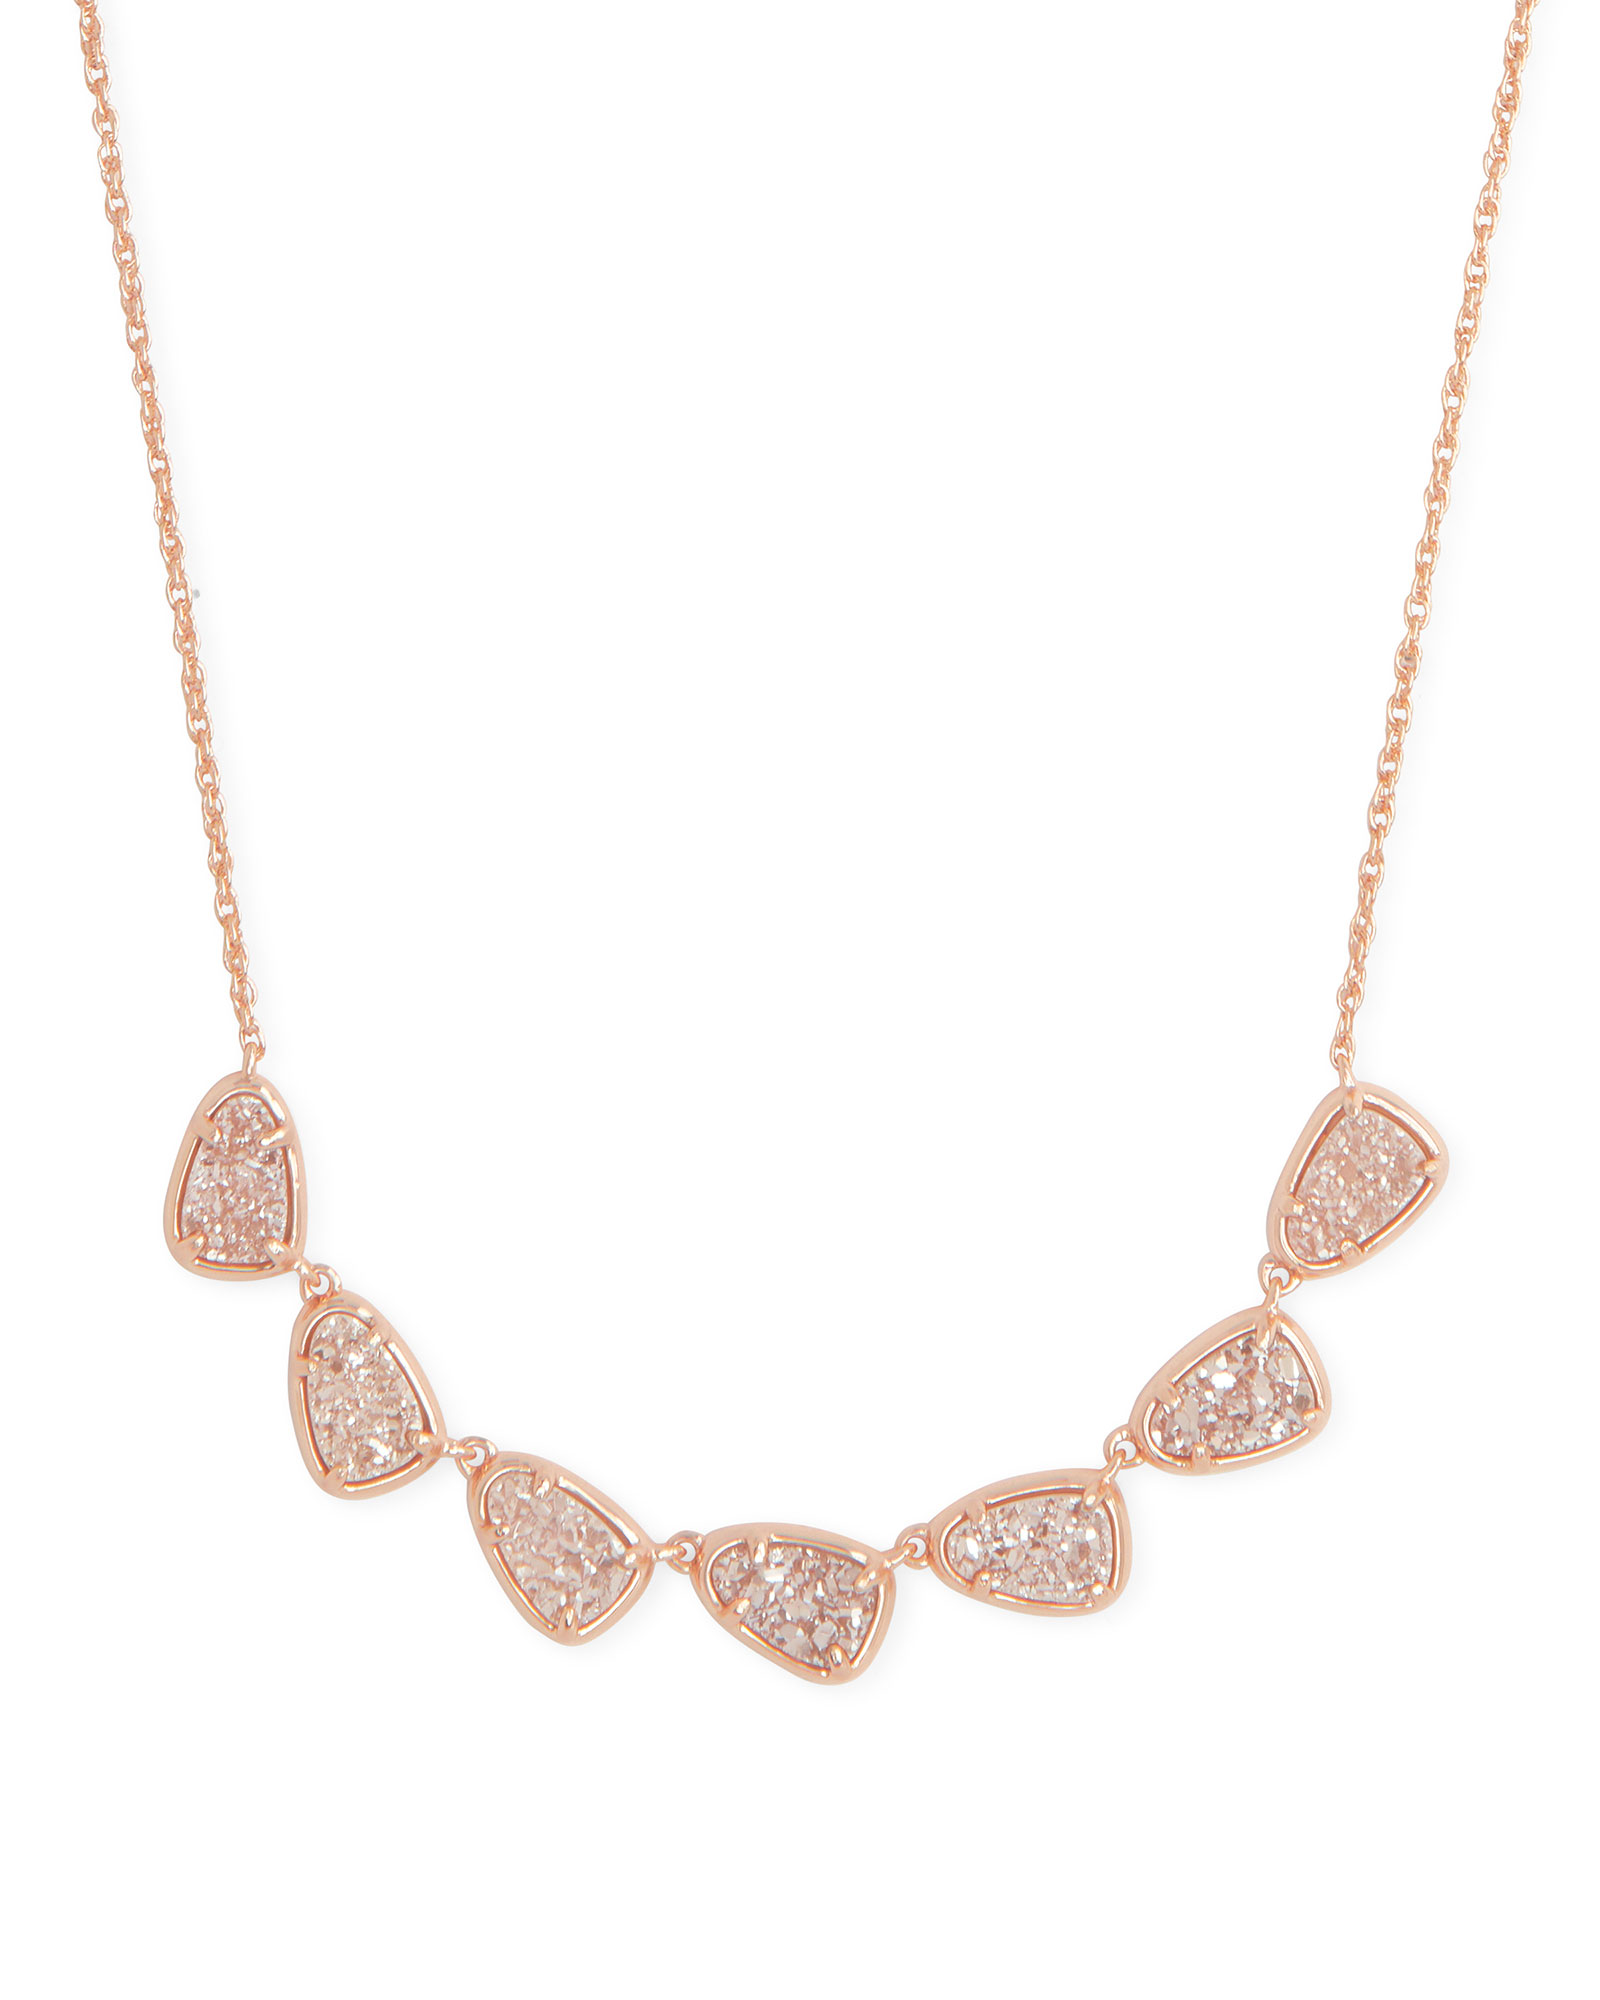 Susanna Rose Gold Collar Necklace in Sand Drusy